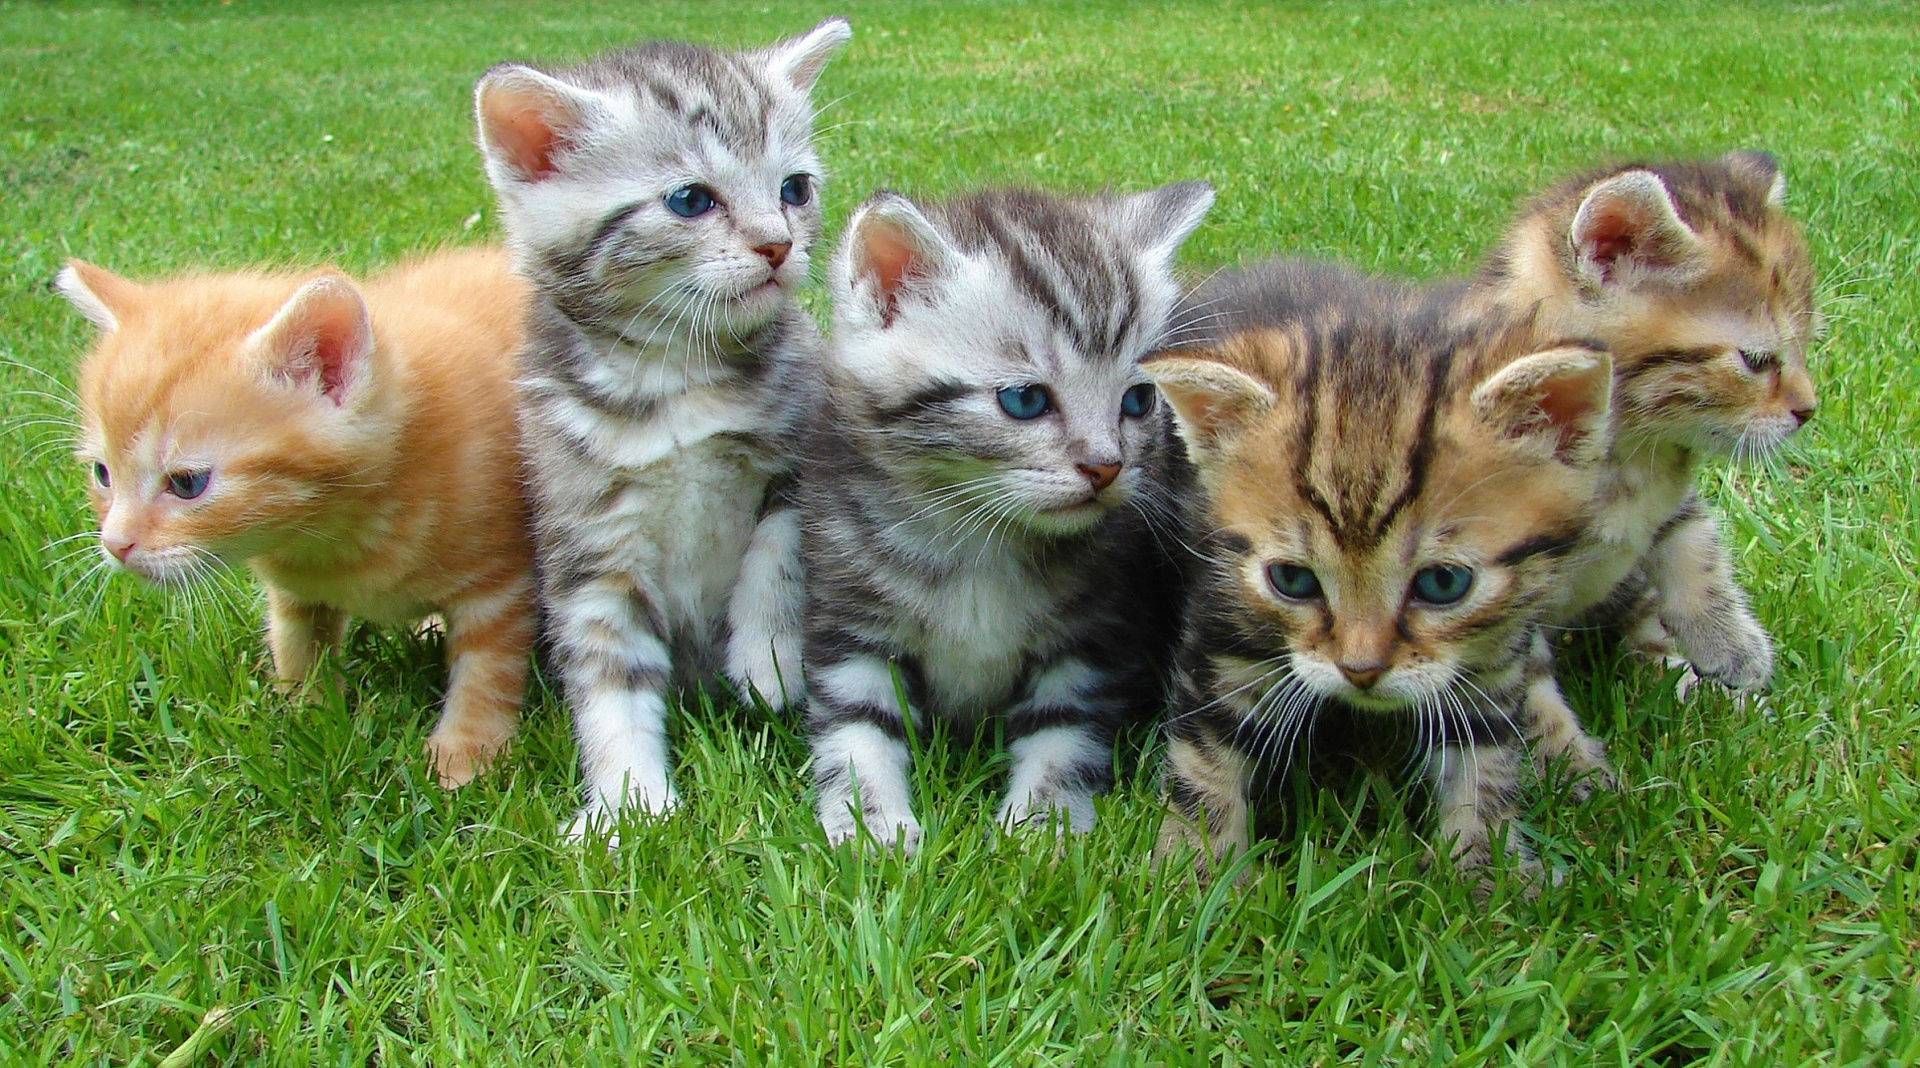 20 photos d'adorables chatons